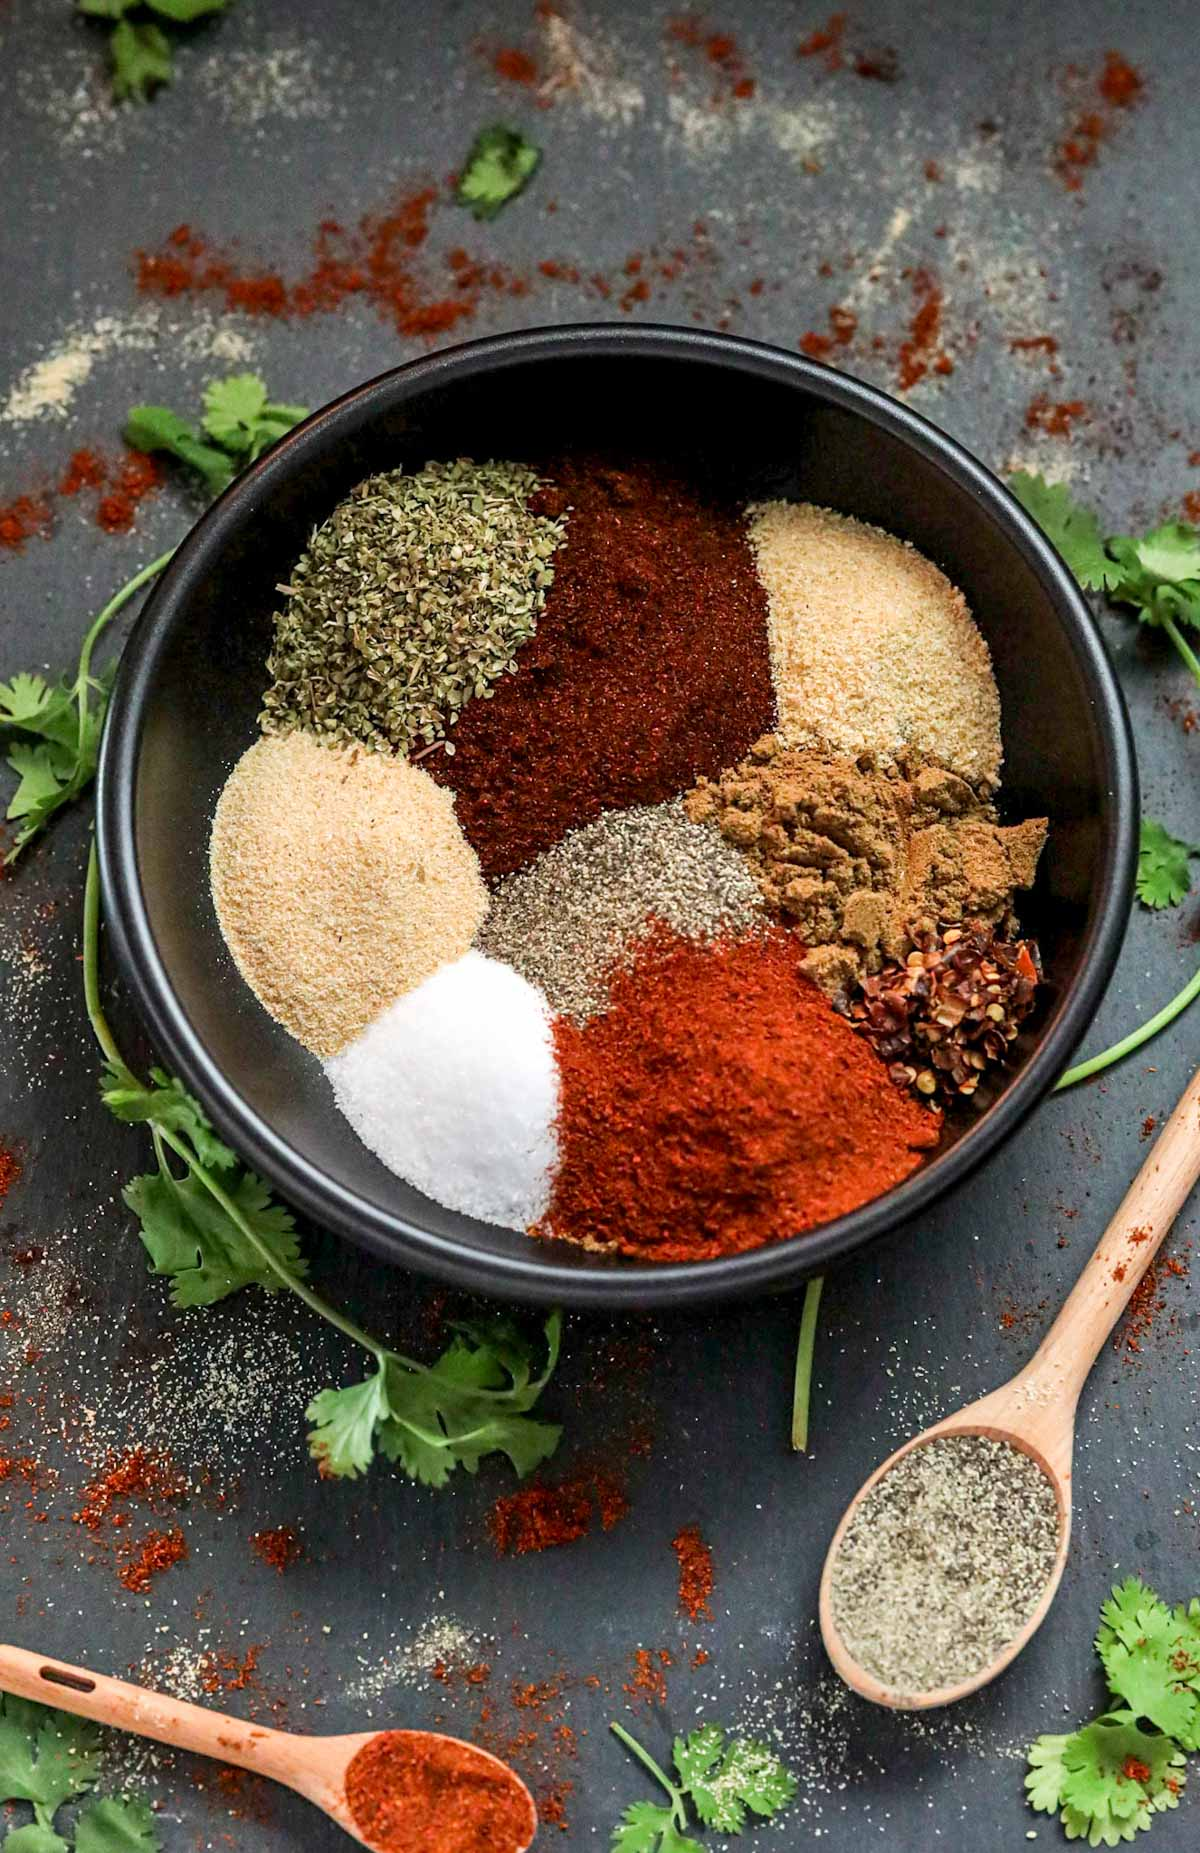 seasonings in a large bowl with spoons and Mexican spices